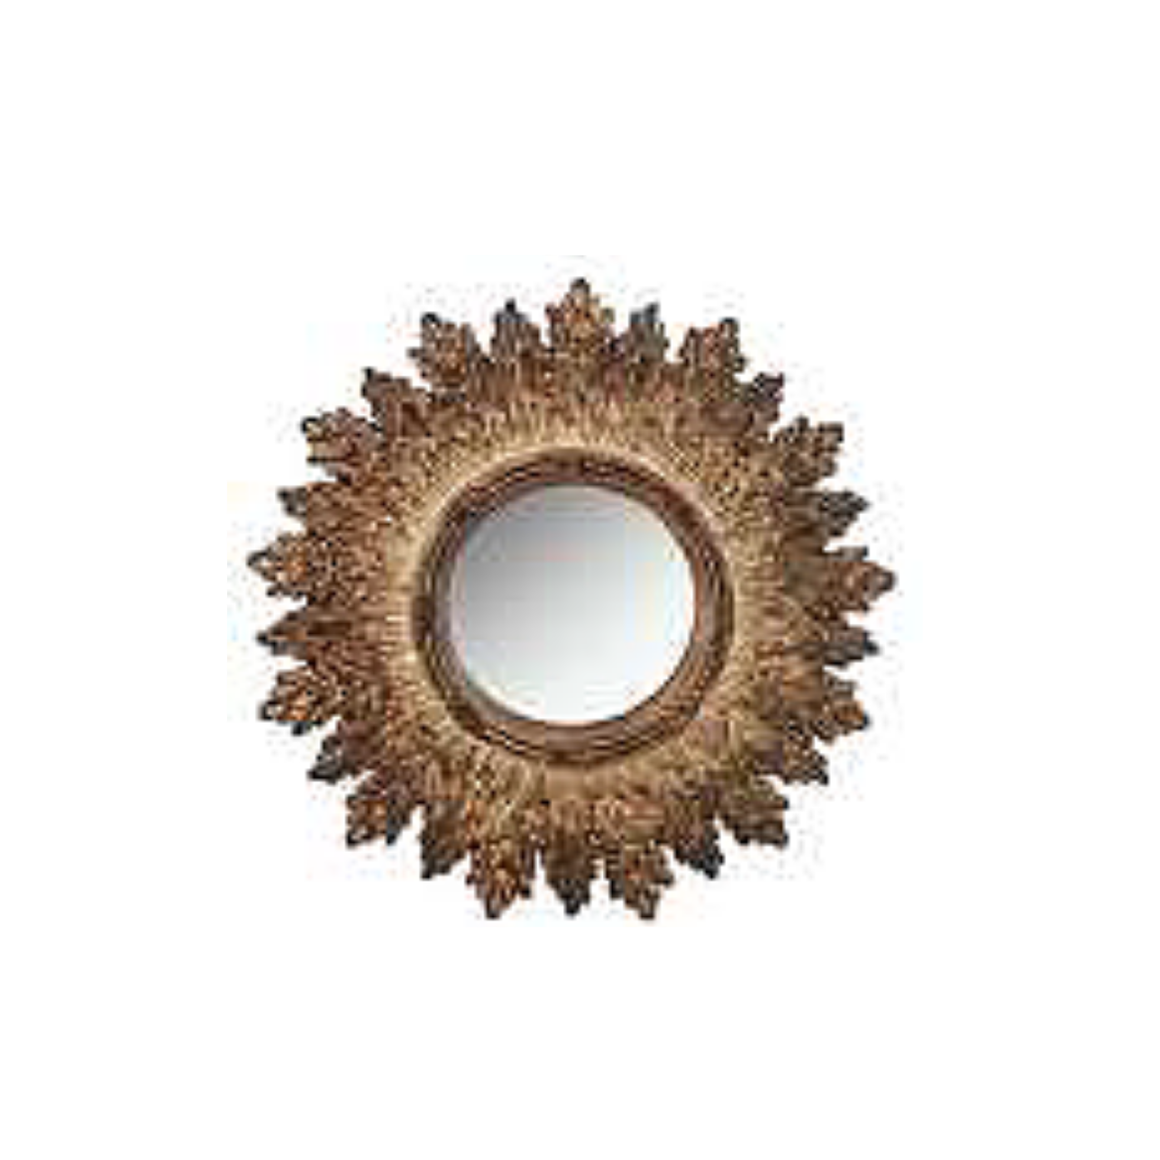 LION'S TONGUE MIRROR IN ANTIQUE GOLD